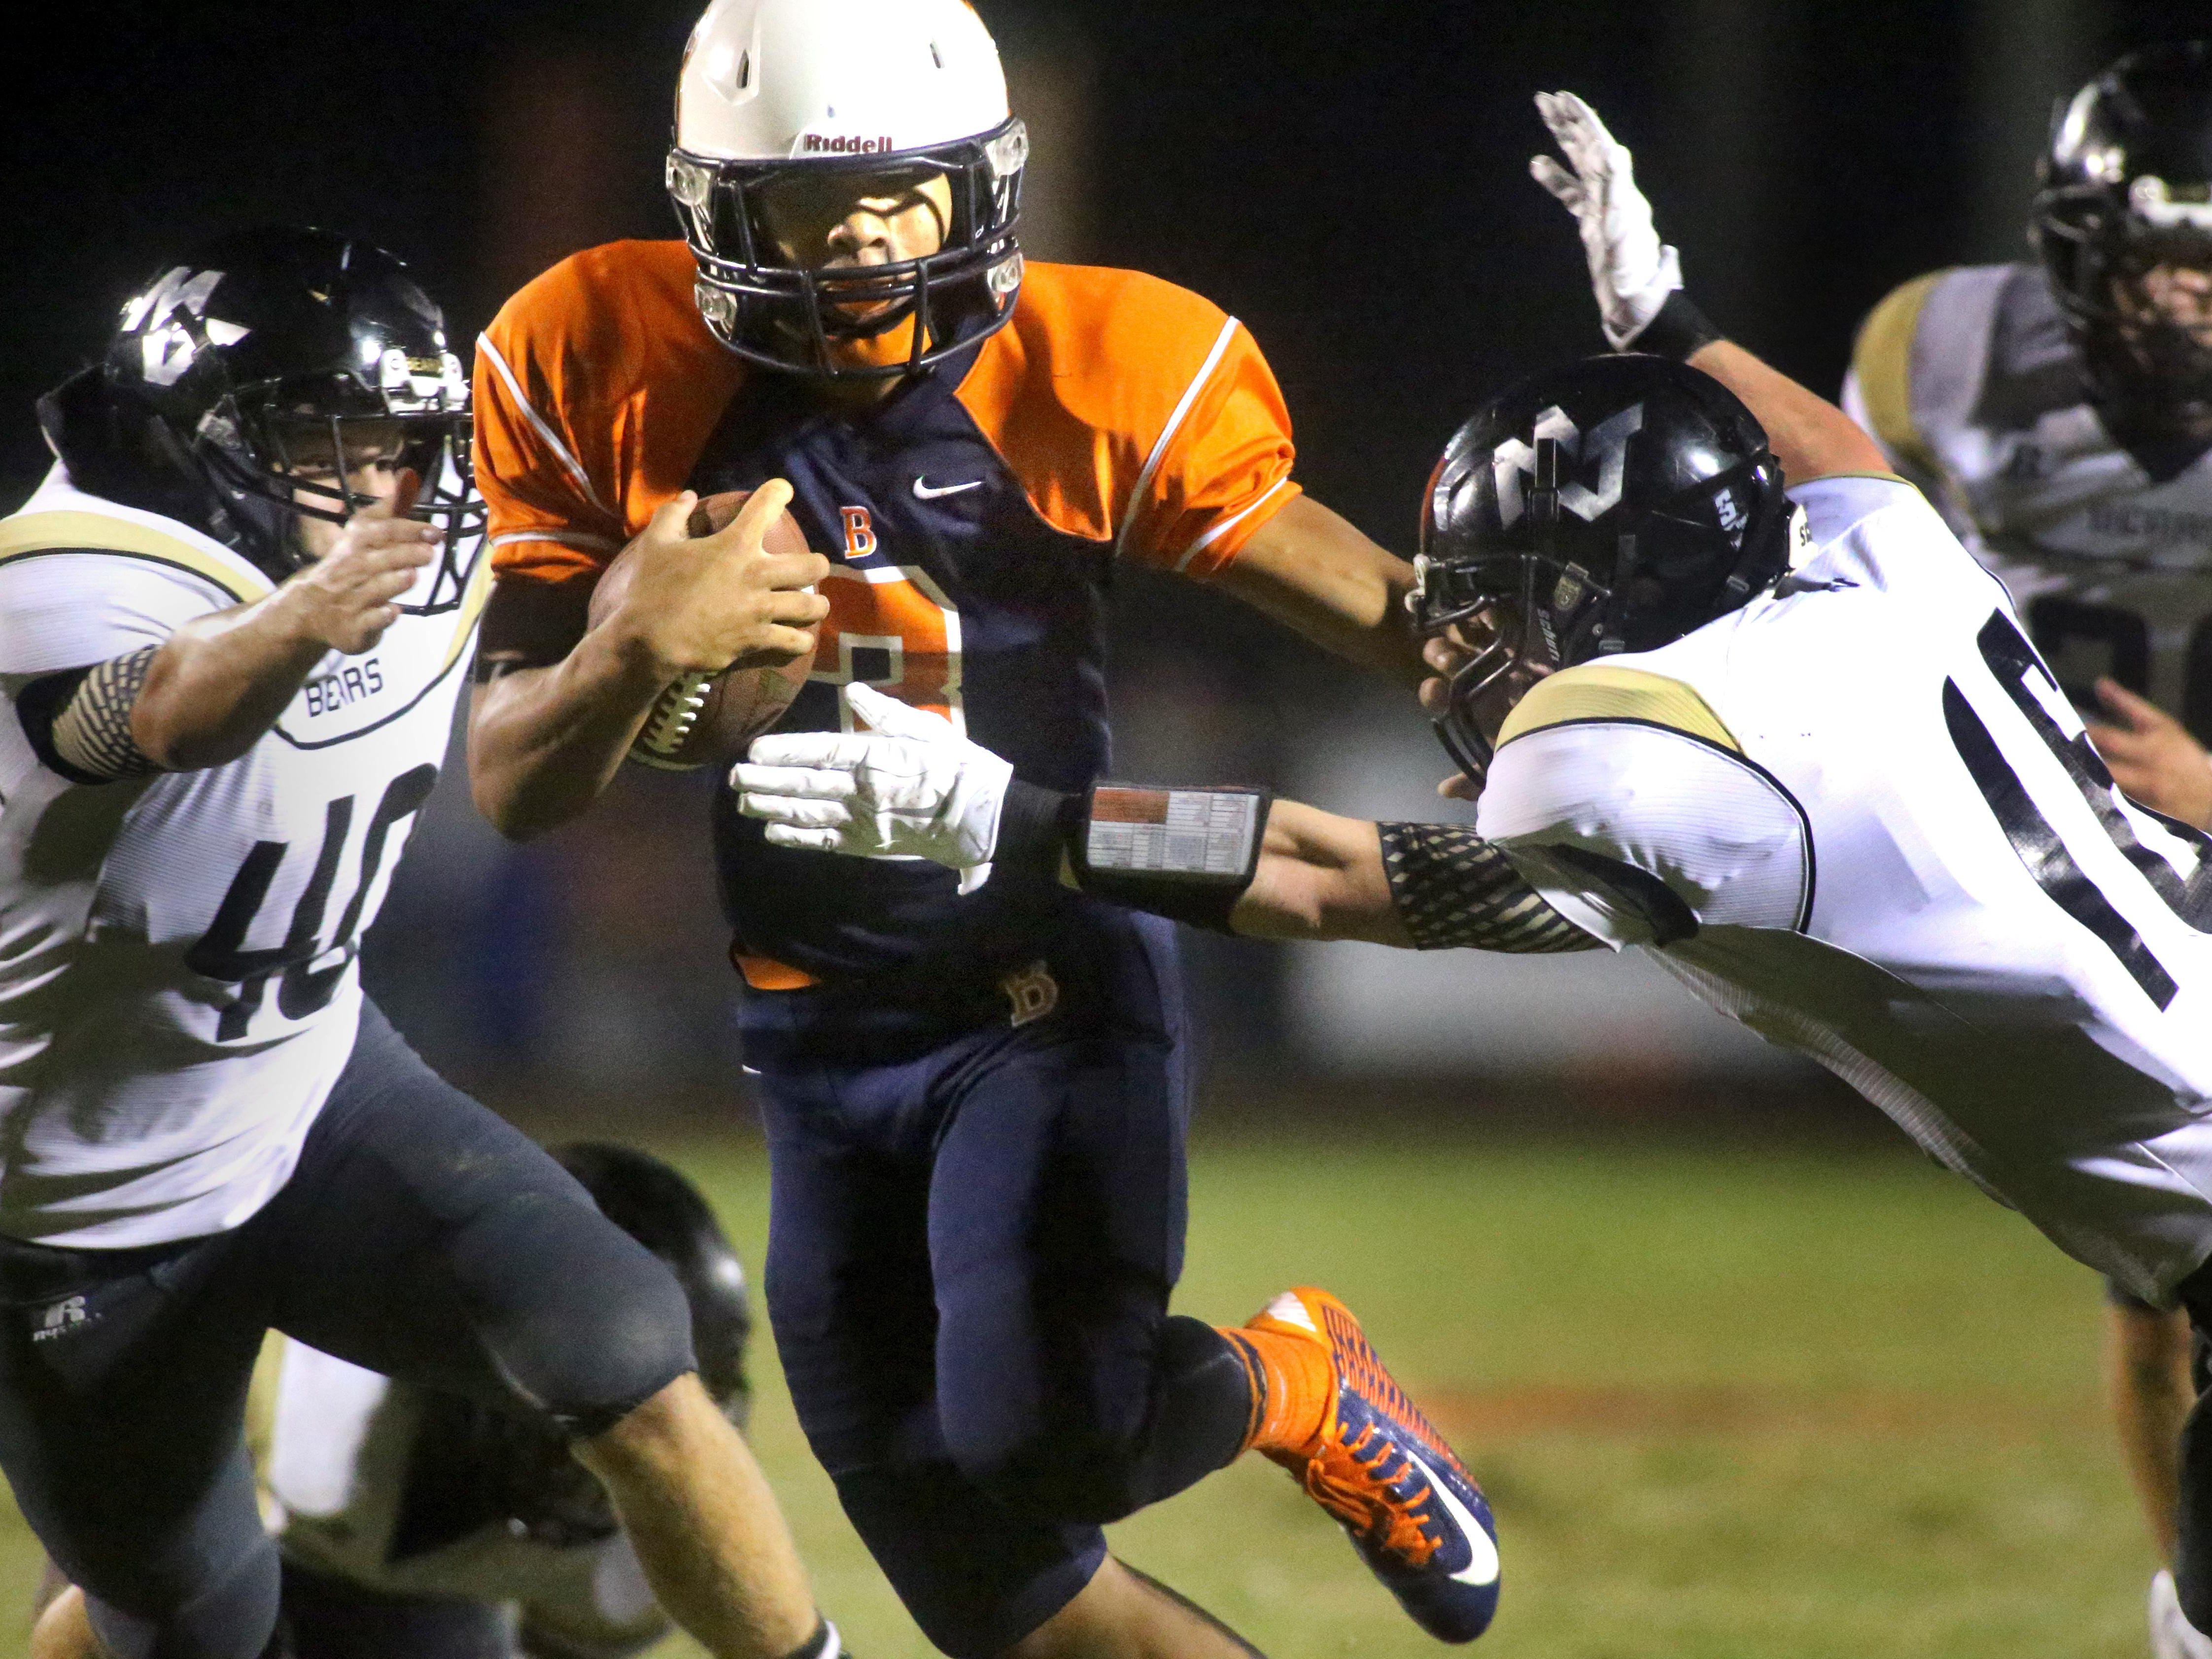 Blackman's Taeler Dowdy will be the Blaze's starting running back in 2015.